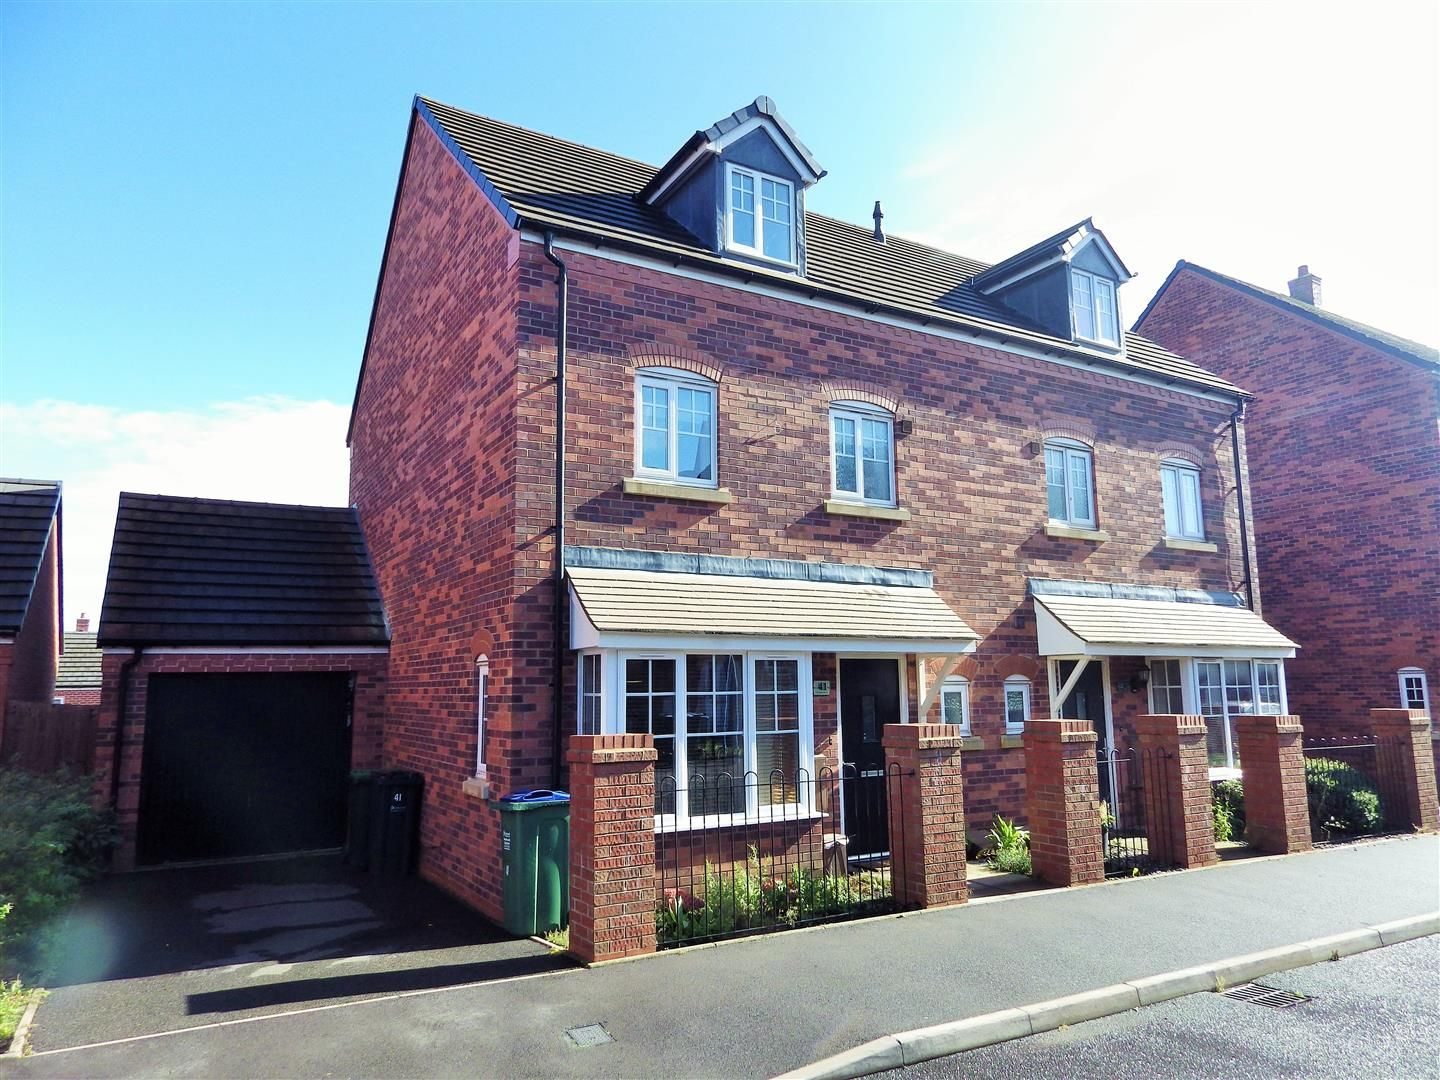 4 bed semi-detached for sale, B66